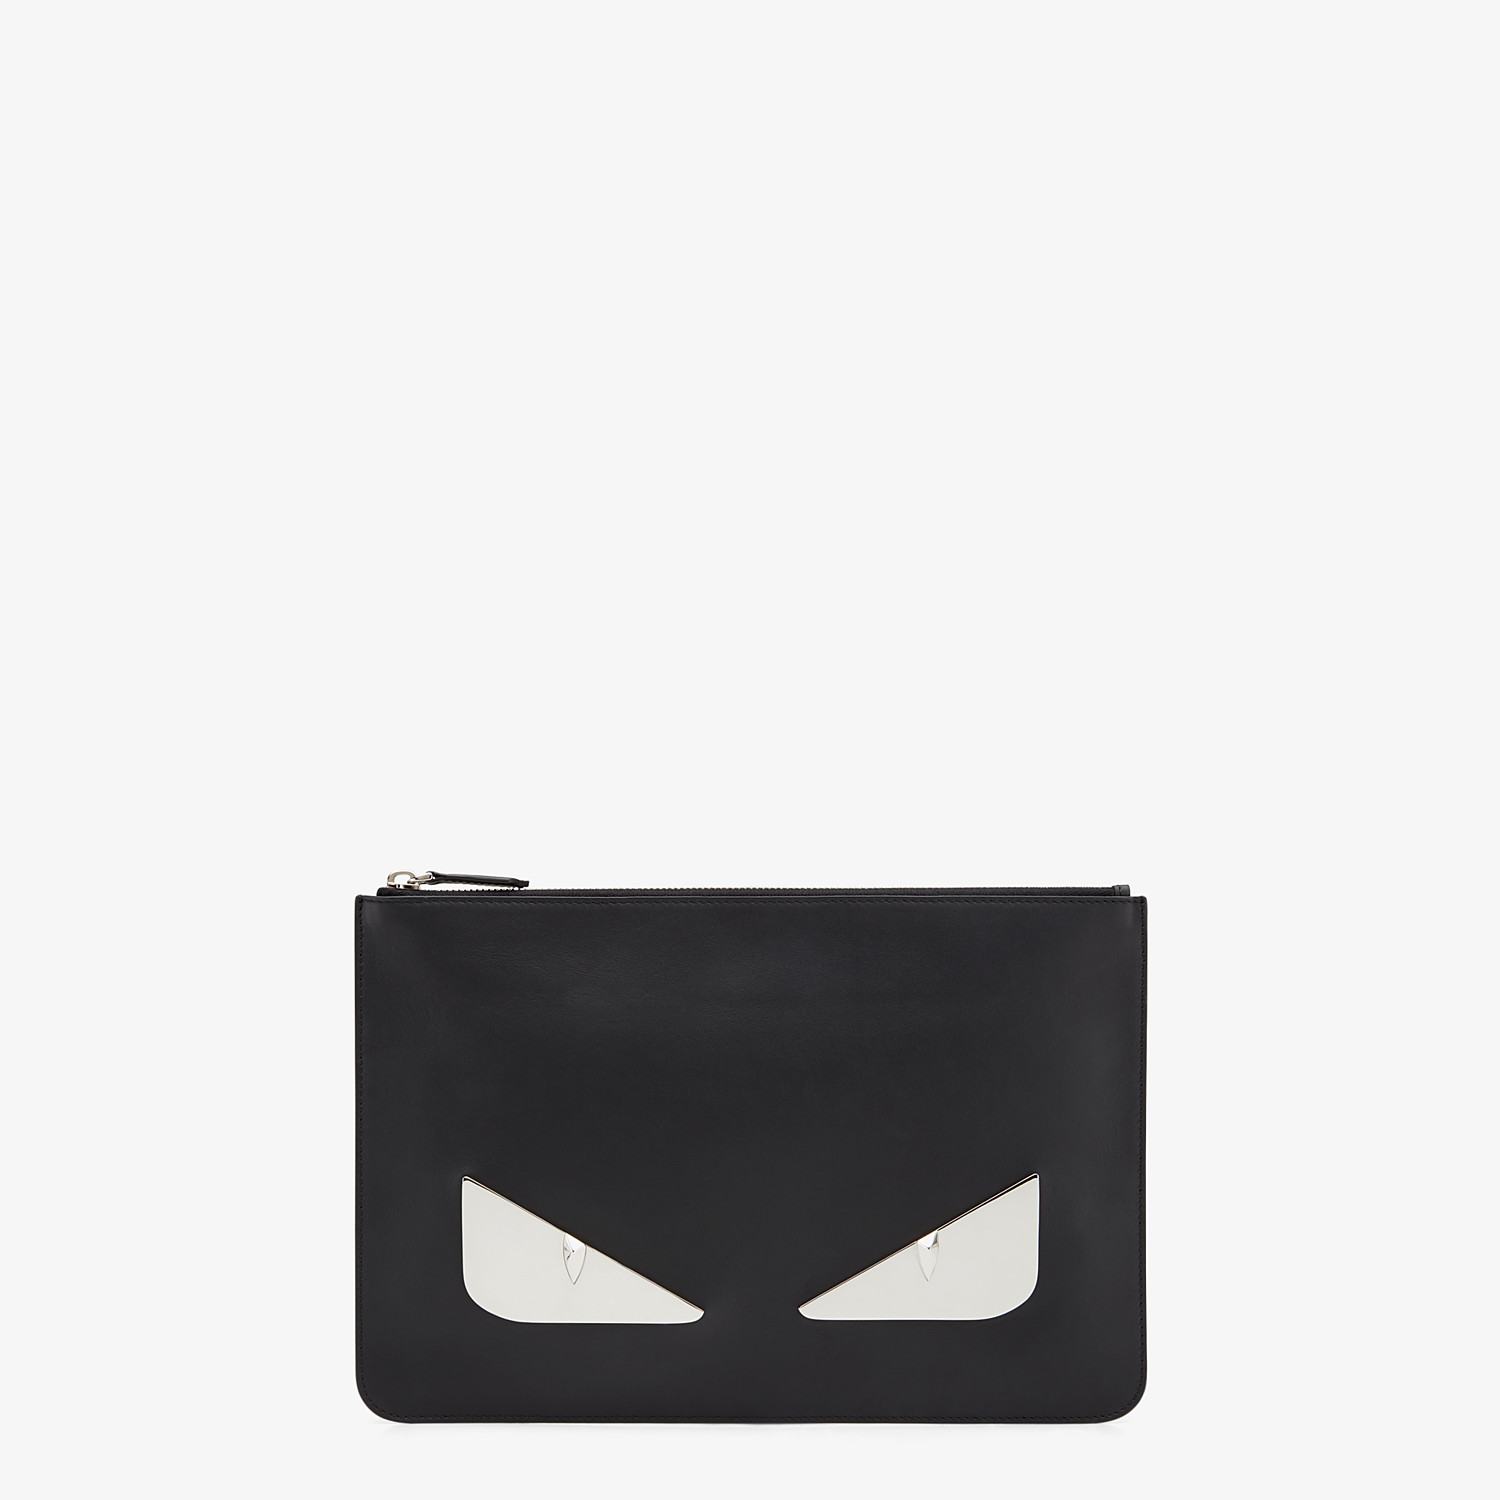 FENDI POUCH - Black leather and metal pochette - view 1 detail